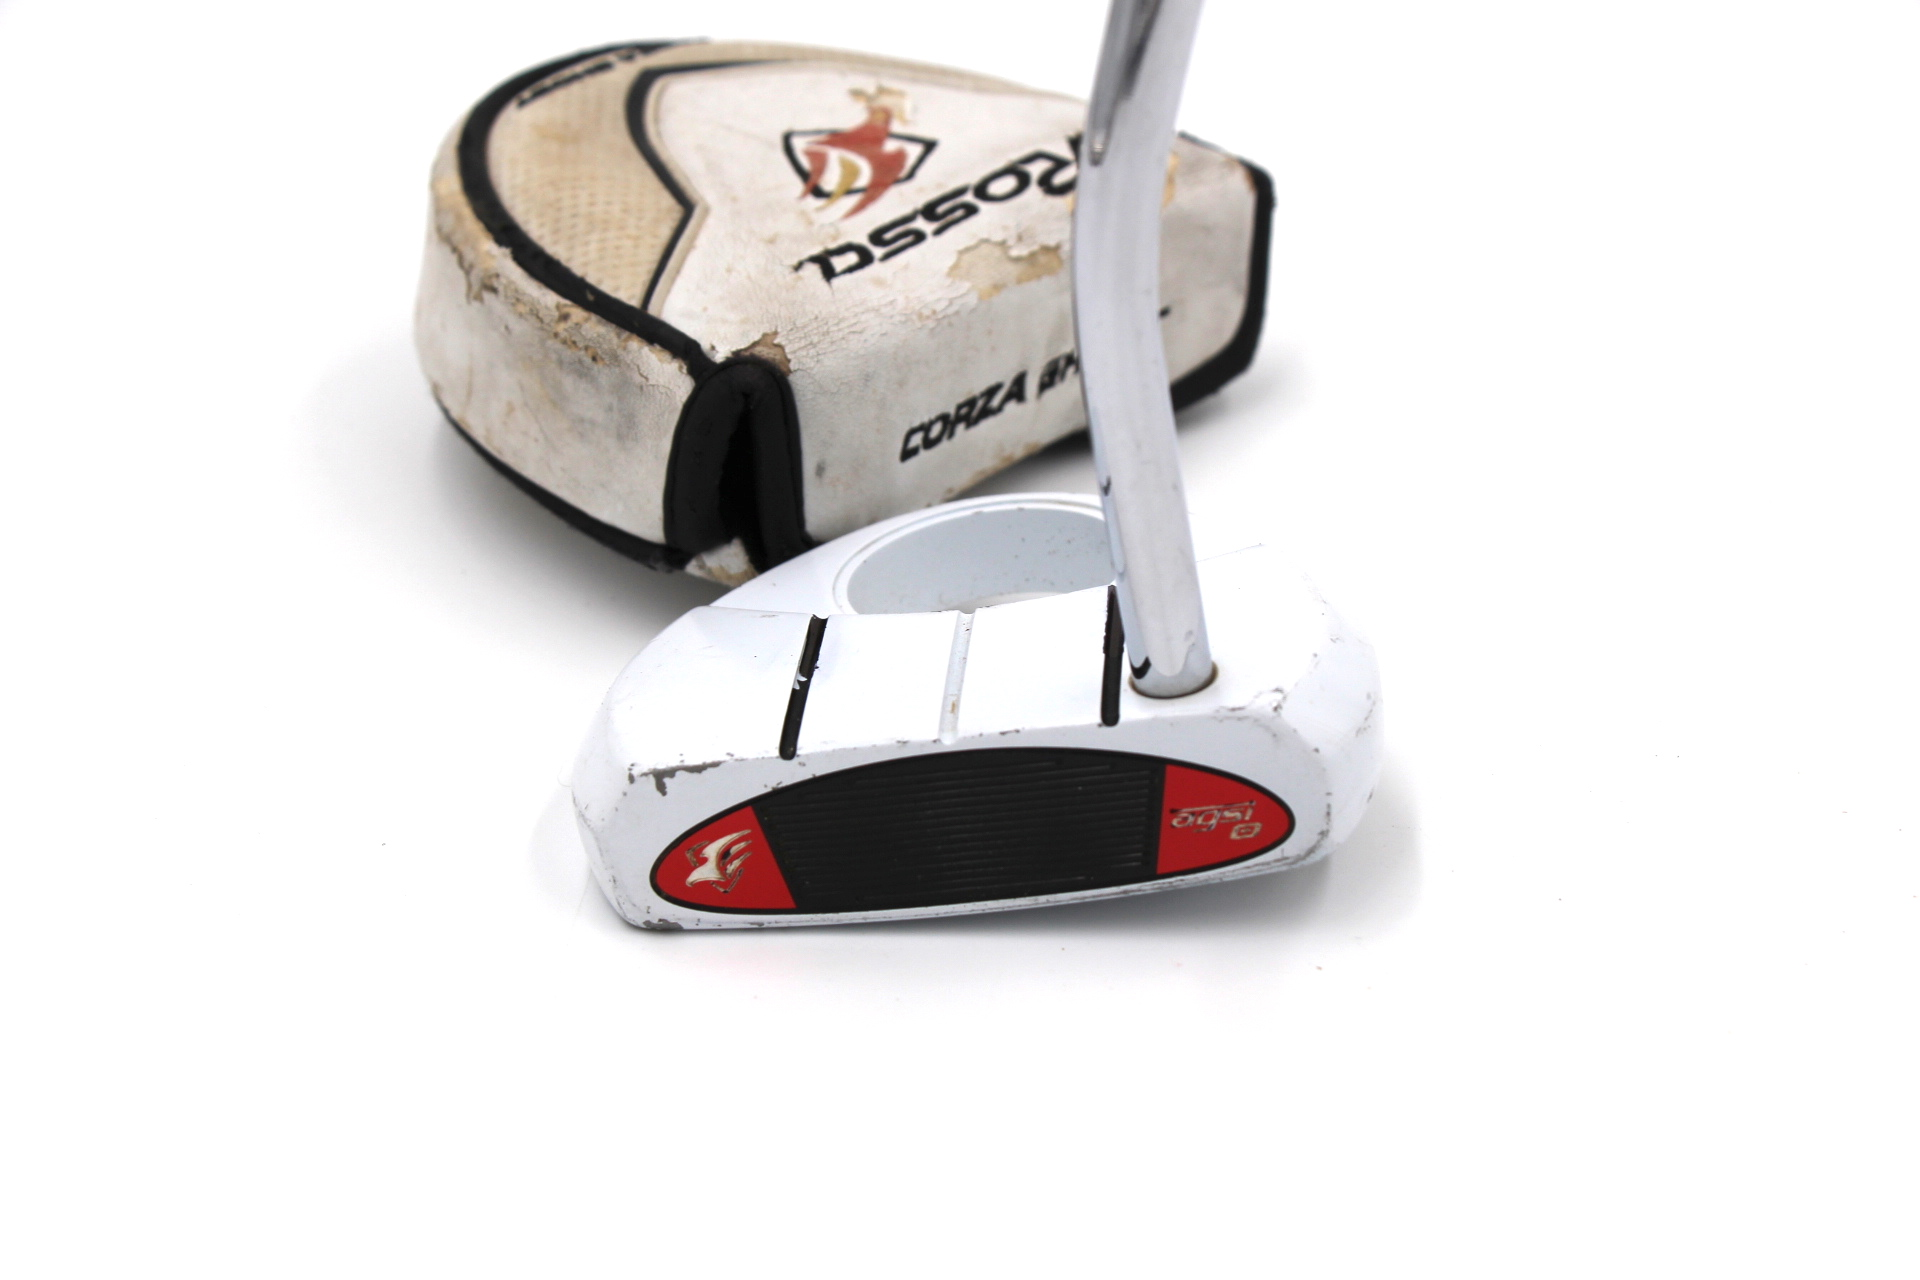 TaylorMade Rossa Corza Ghost